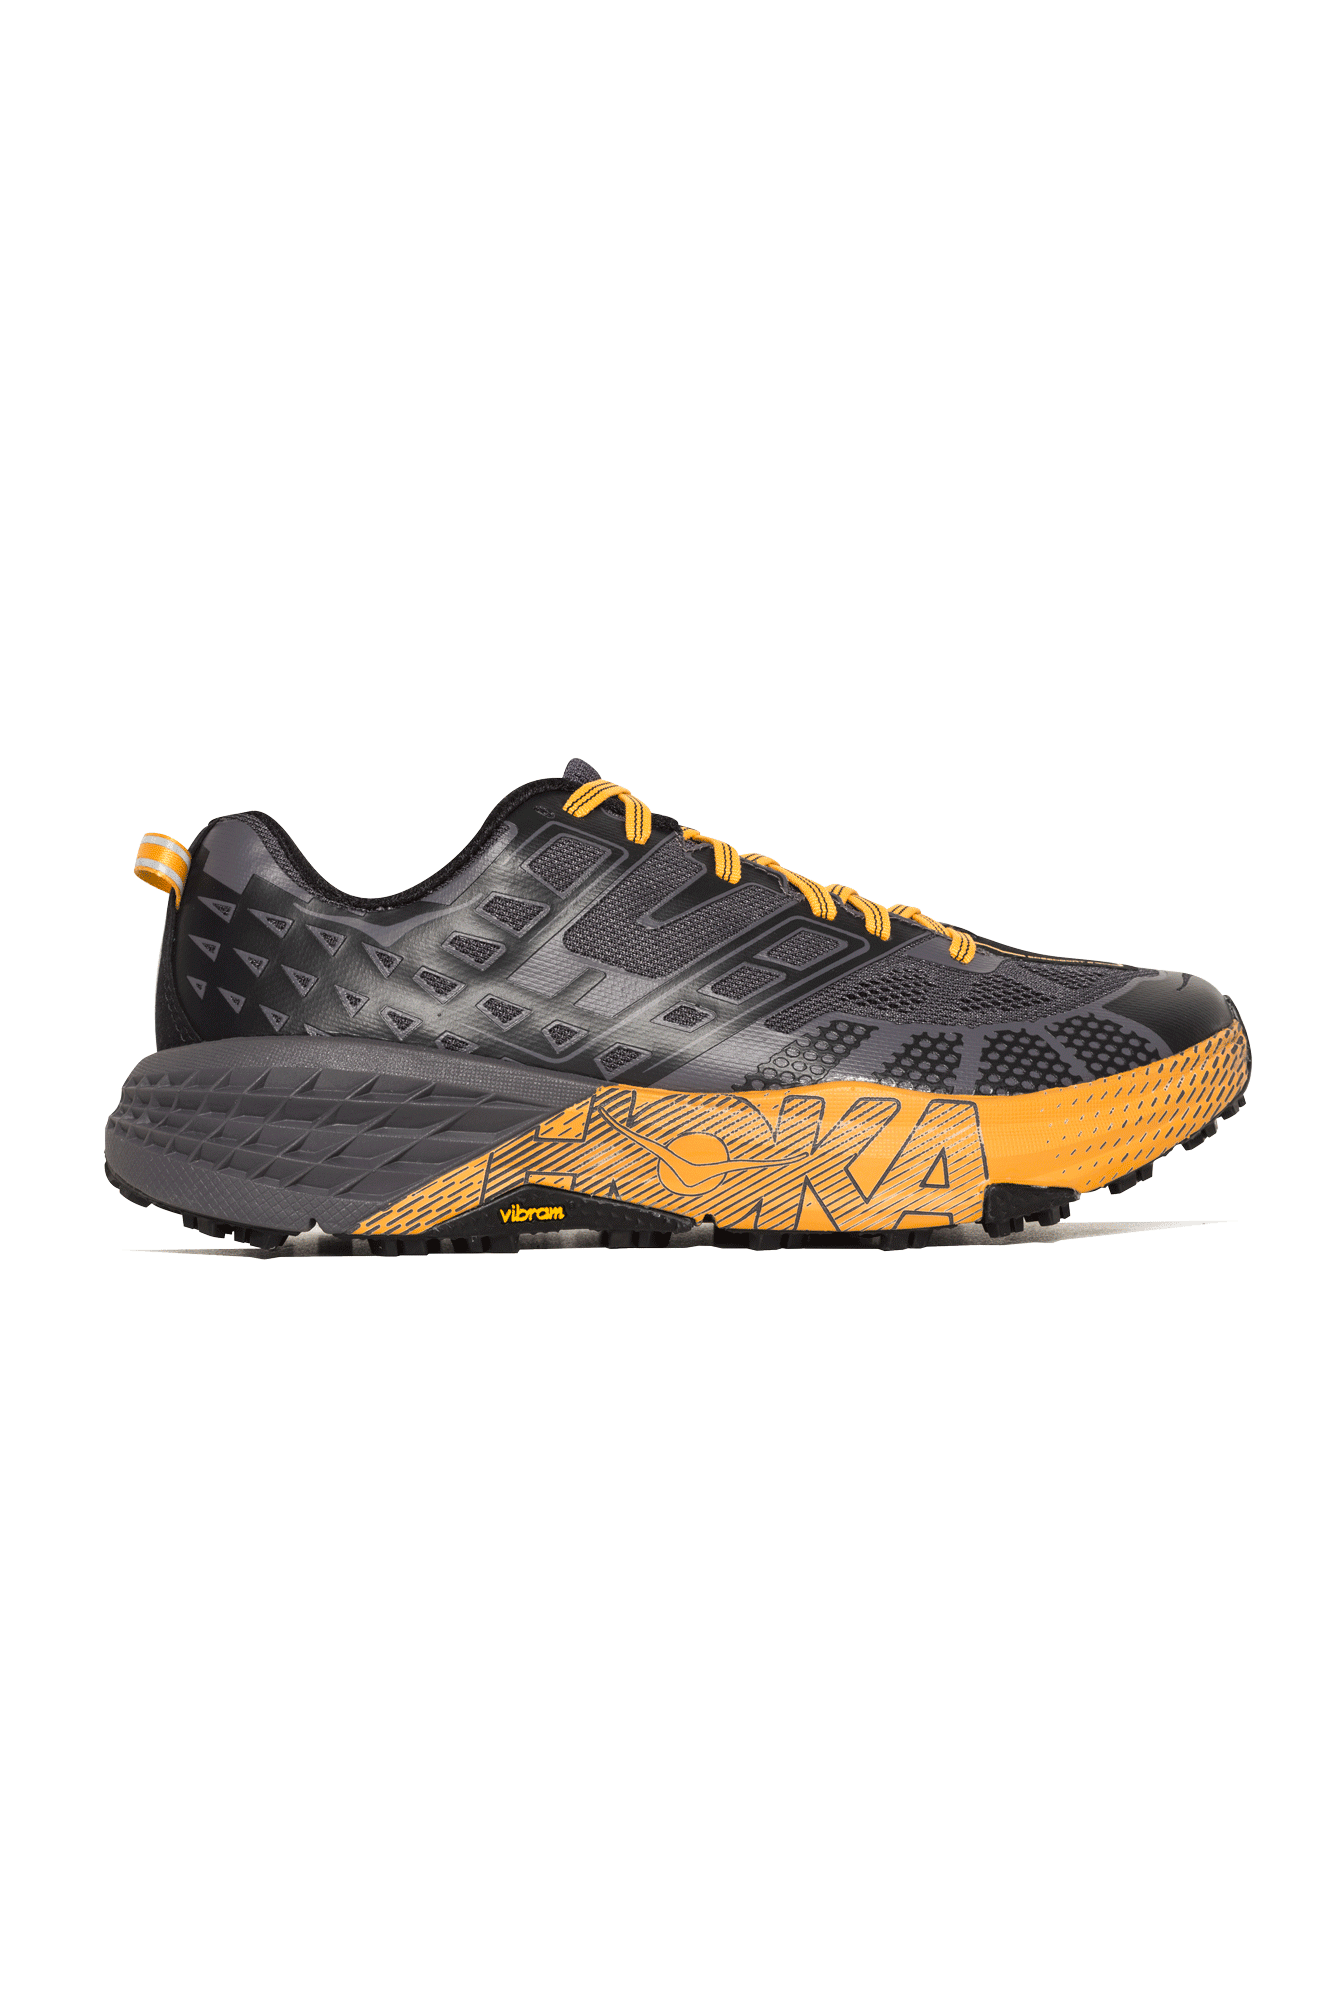 Hoka One One Sneakers Speedgoat 2 Rosso 1016795#000#C0012#7,5 - One Block Down